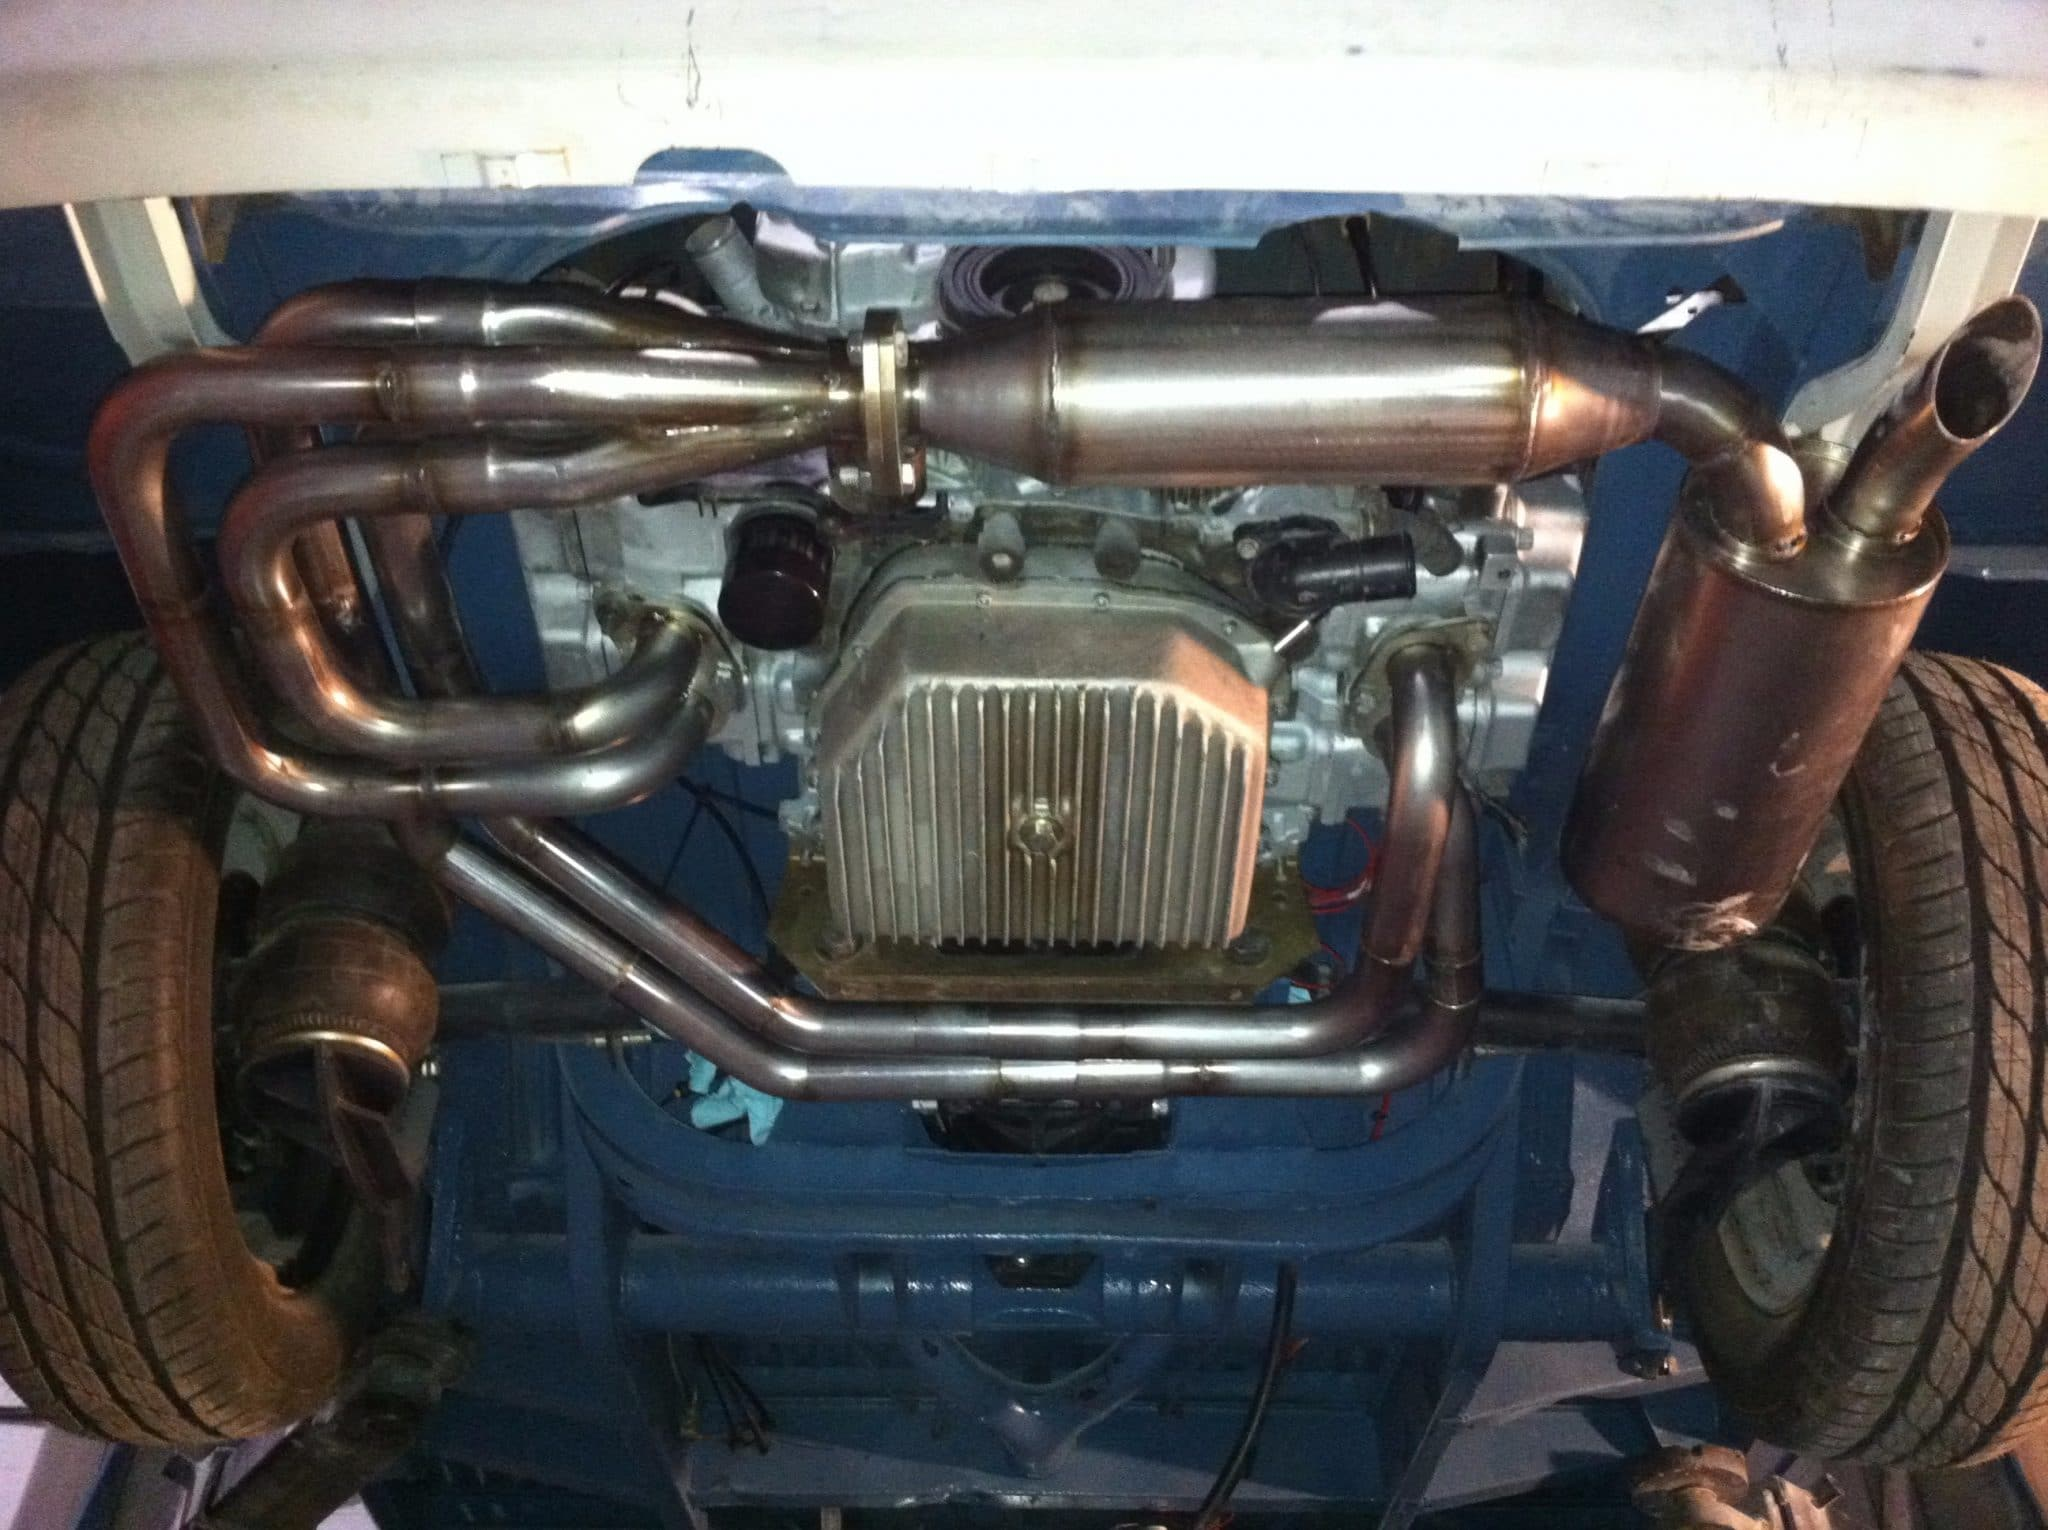 close up of under view of car - exhaust restoration